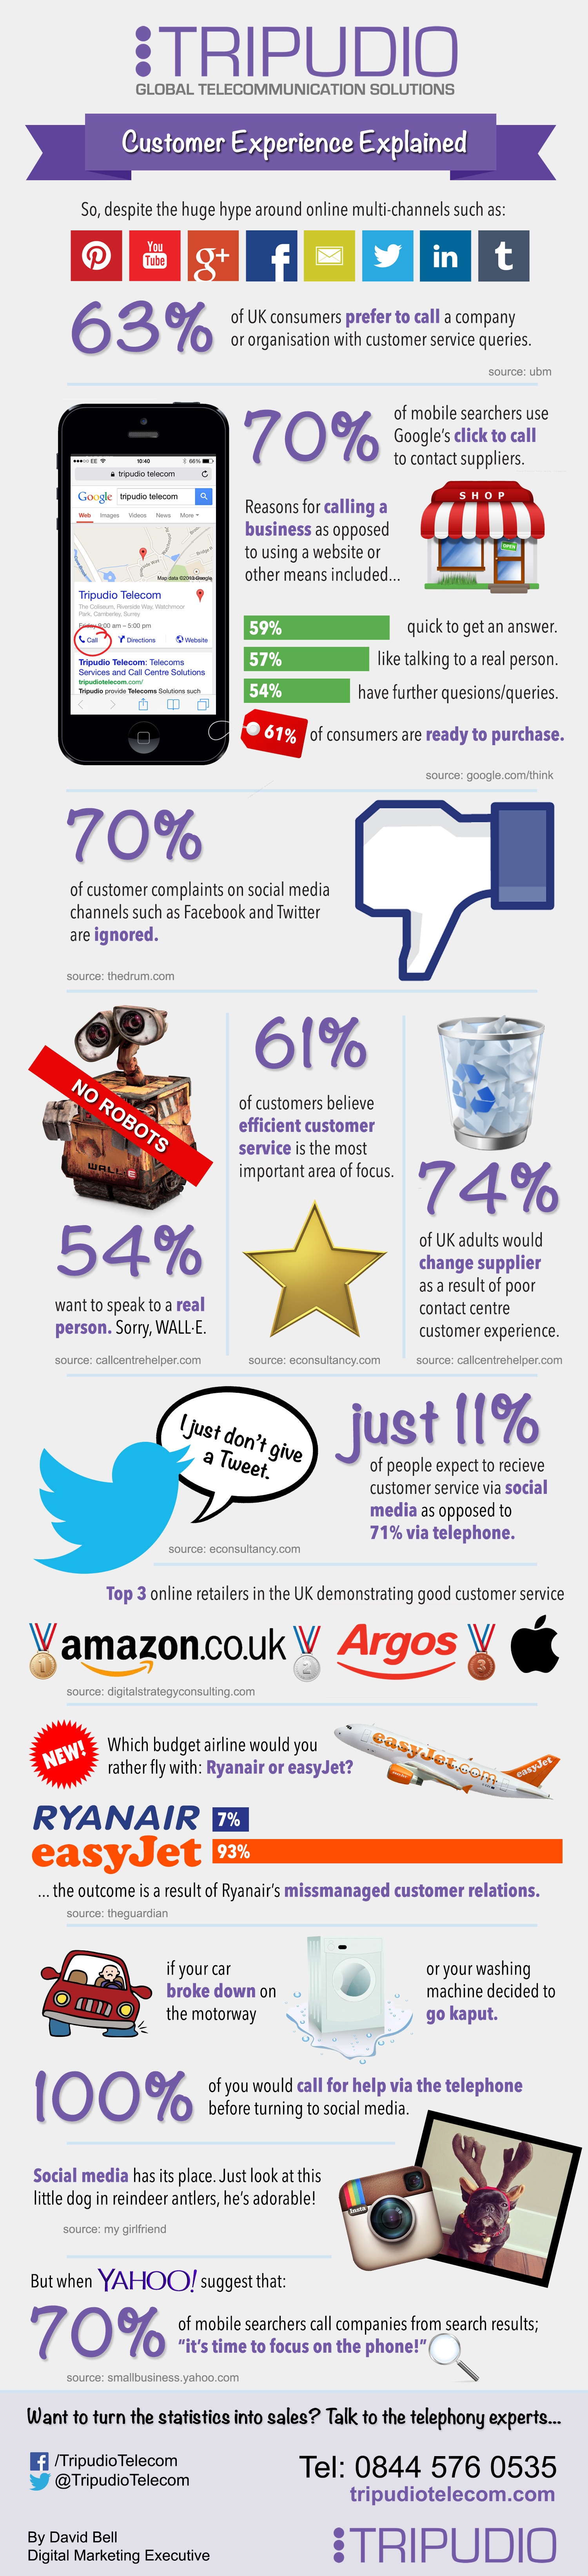 Tripudio Infographic - Customer Experience Explained